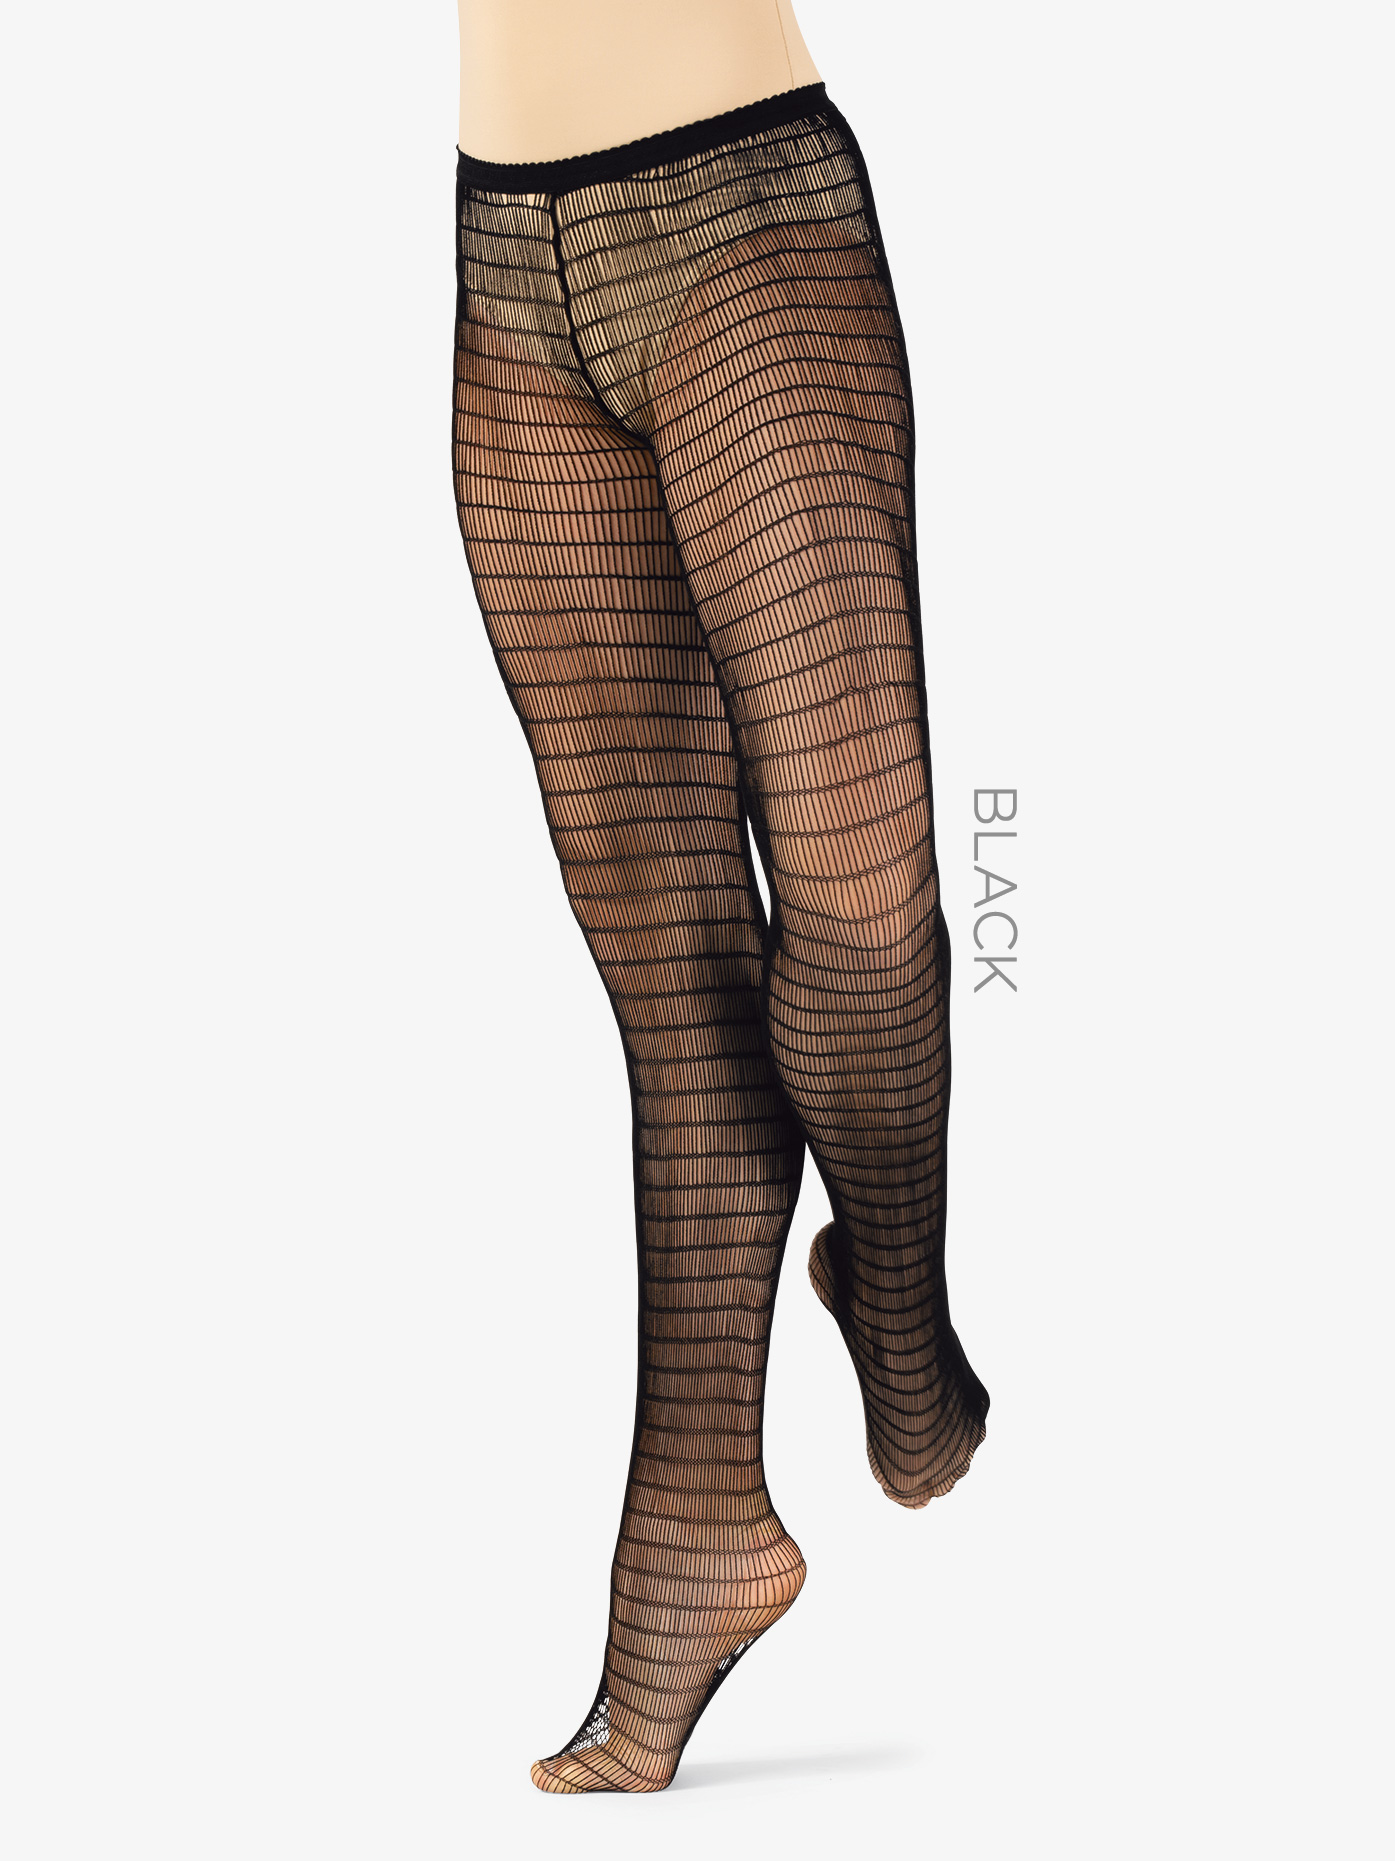 888e765f33d3c Rectangle Striped Net Dance Tights - Fishnet Tights | Leg Avenue LA9328 |  DiscountDance.com